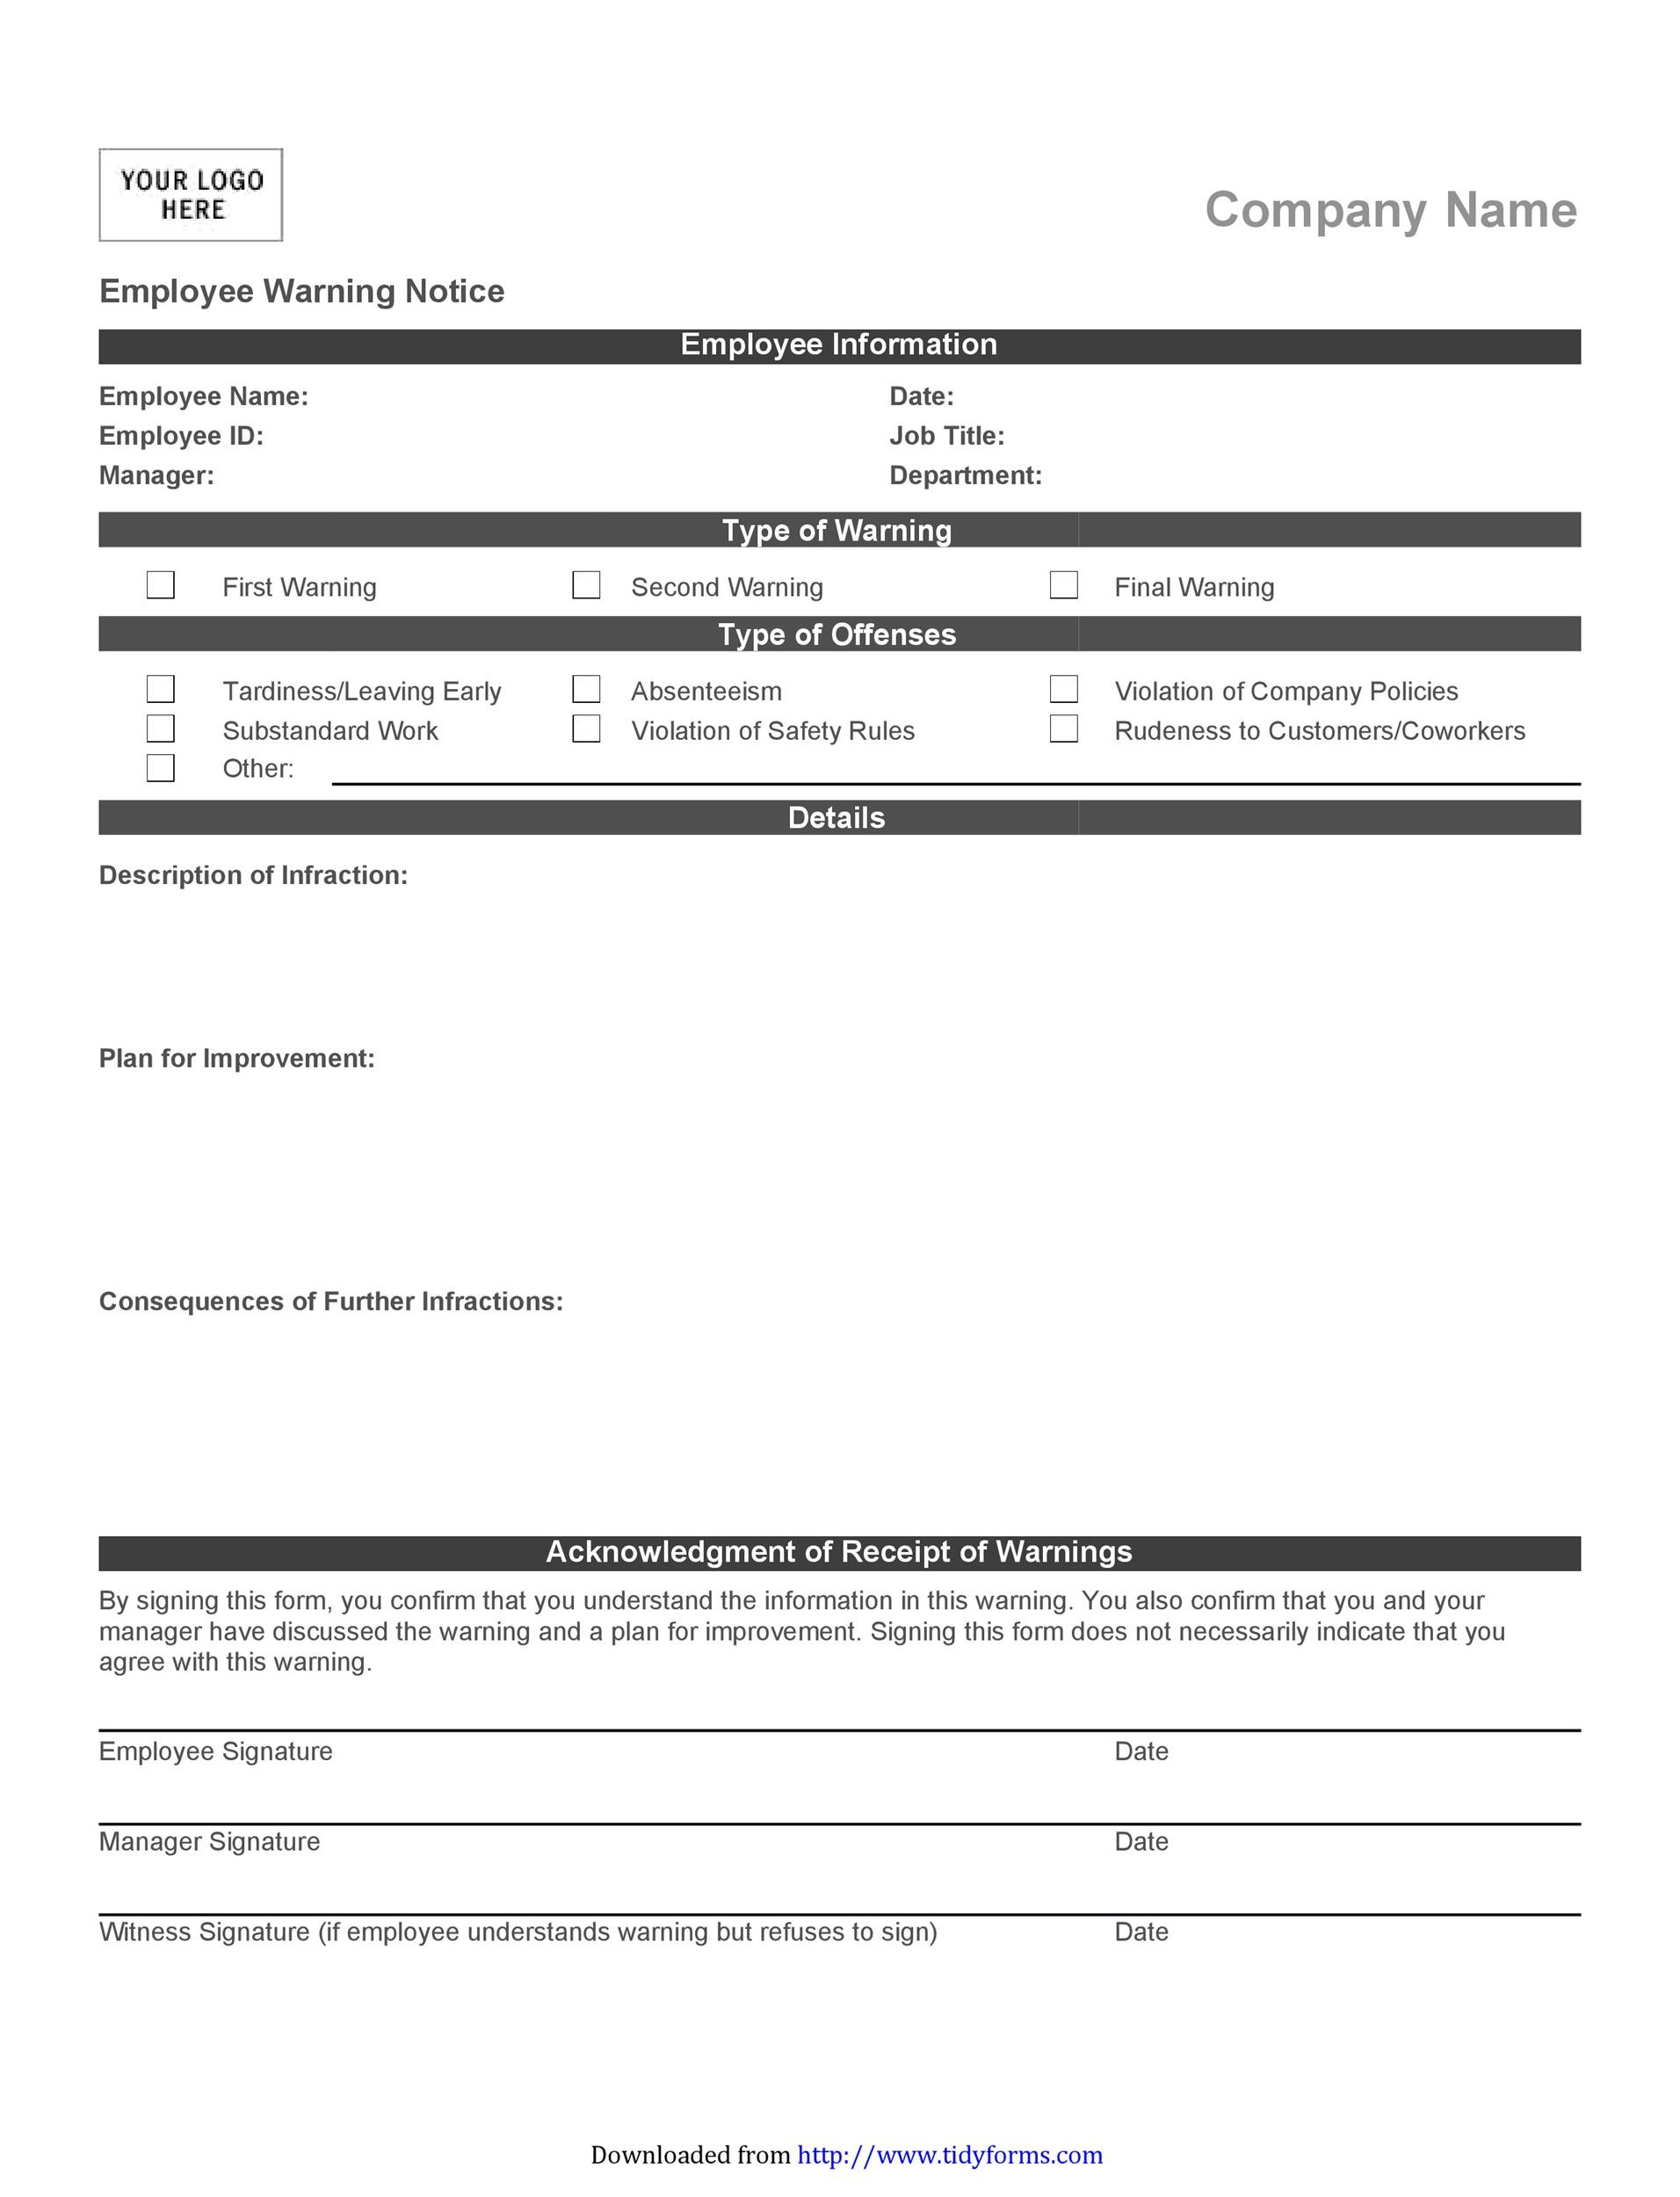 Employee Warning Notice Download 56 Free Templates Forms